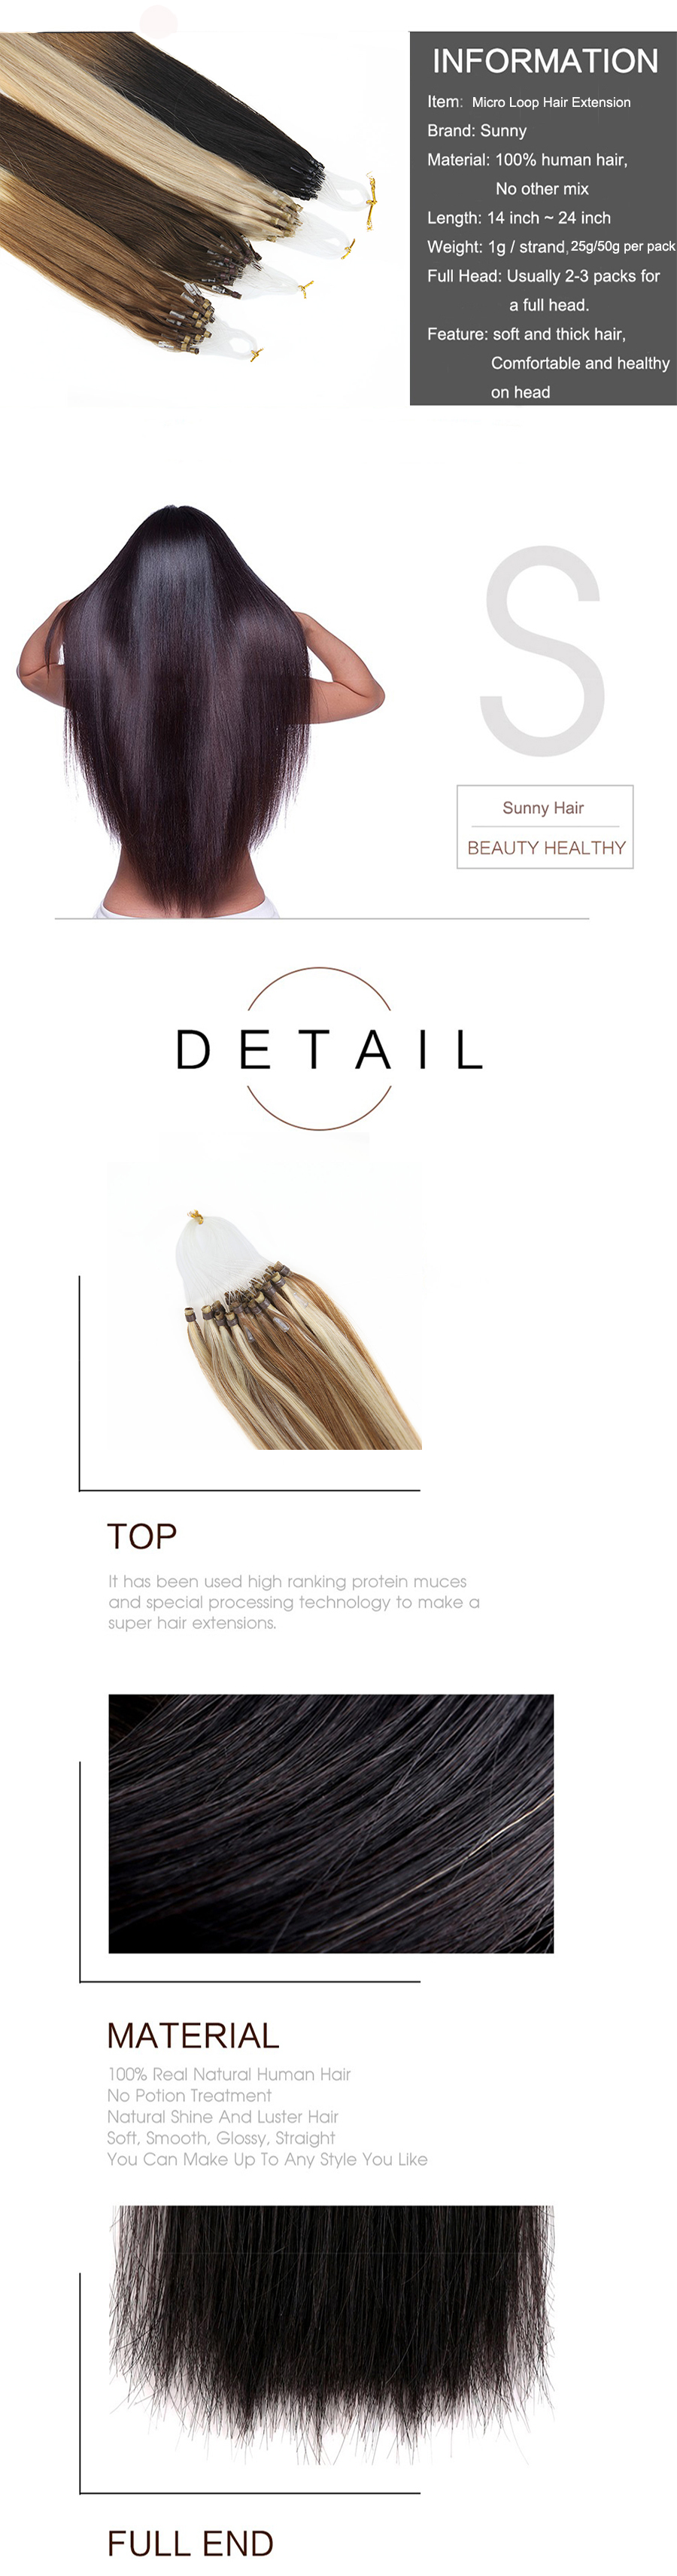 Sunny Micro Ring Beads Human Hair Extensions Micro Loop Hair Blonde